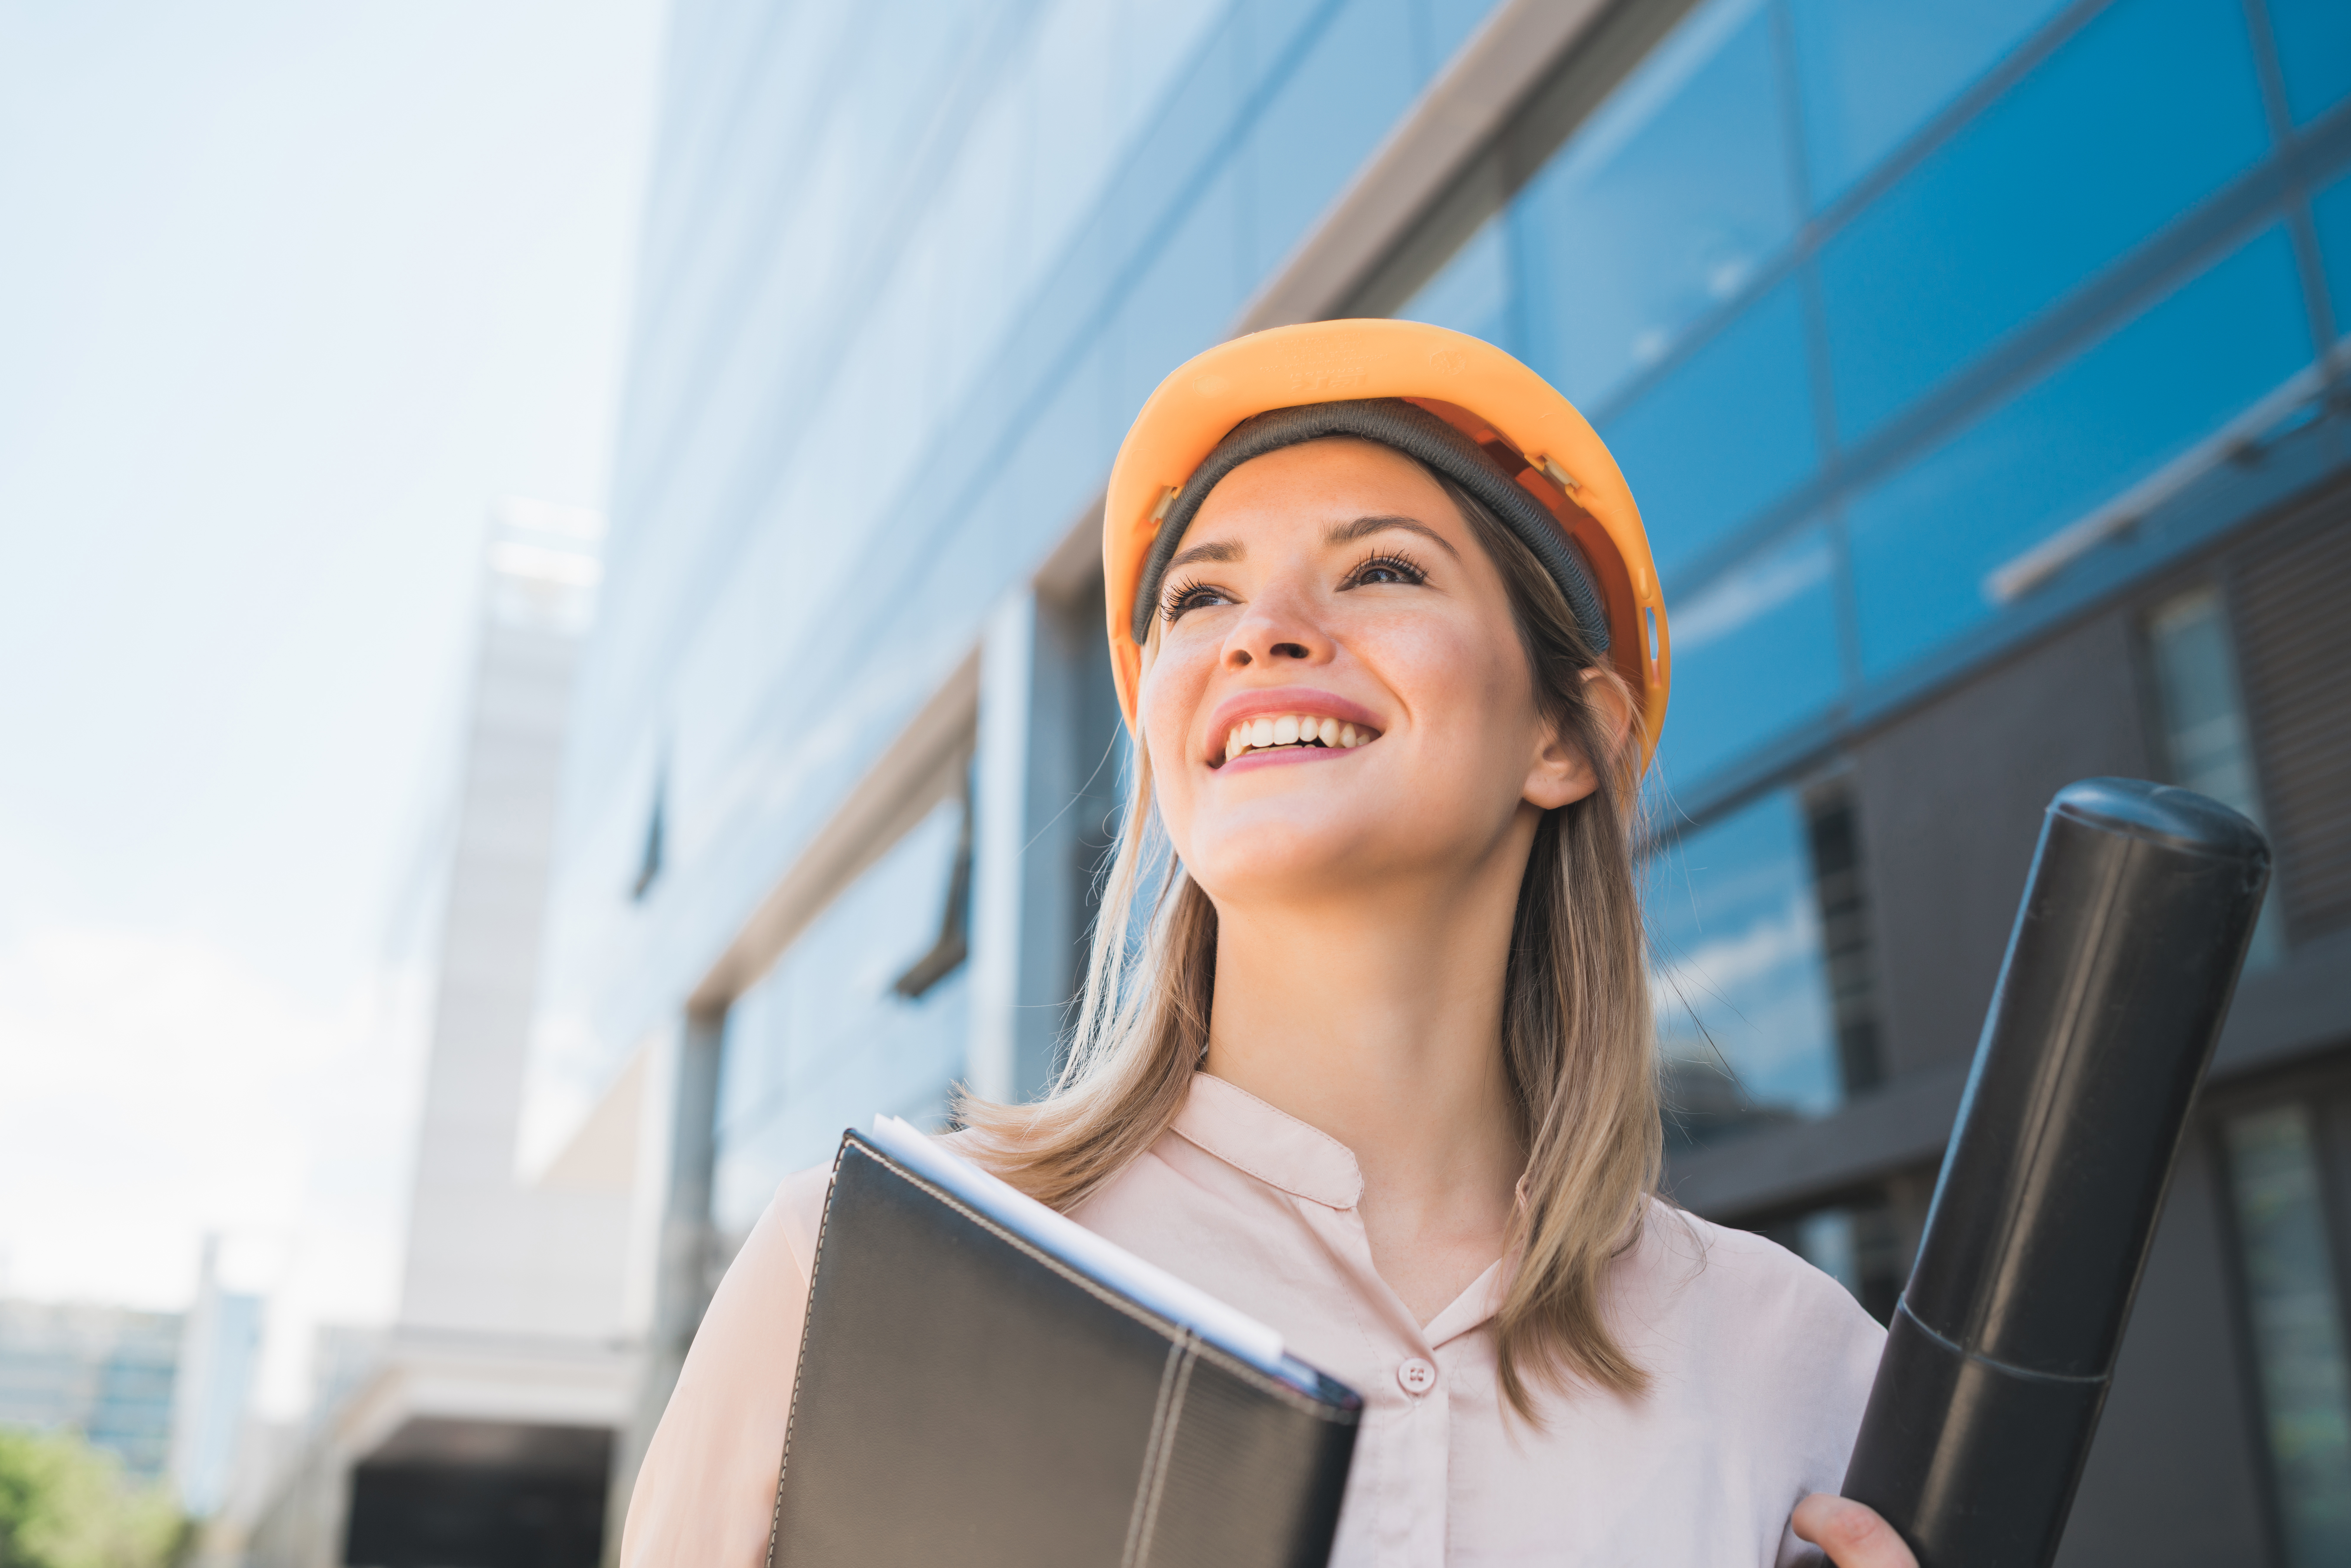 portrait-professional-architect-woman-wearing-yellow-helmet-standing-outdoors-engineer-architect-concept